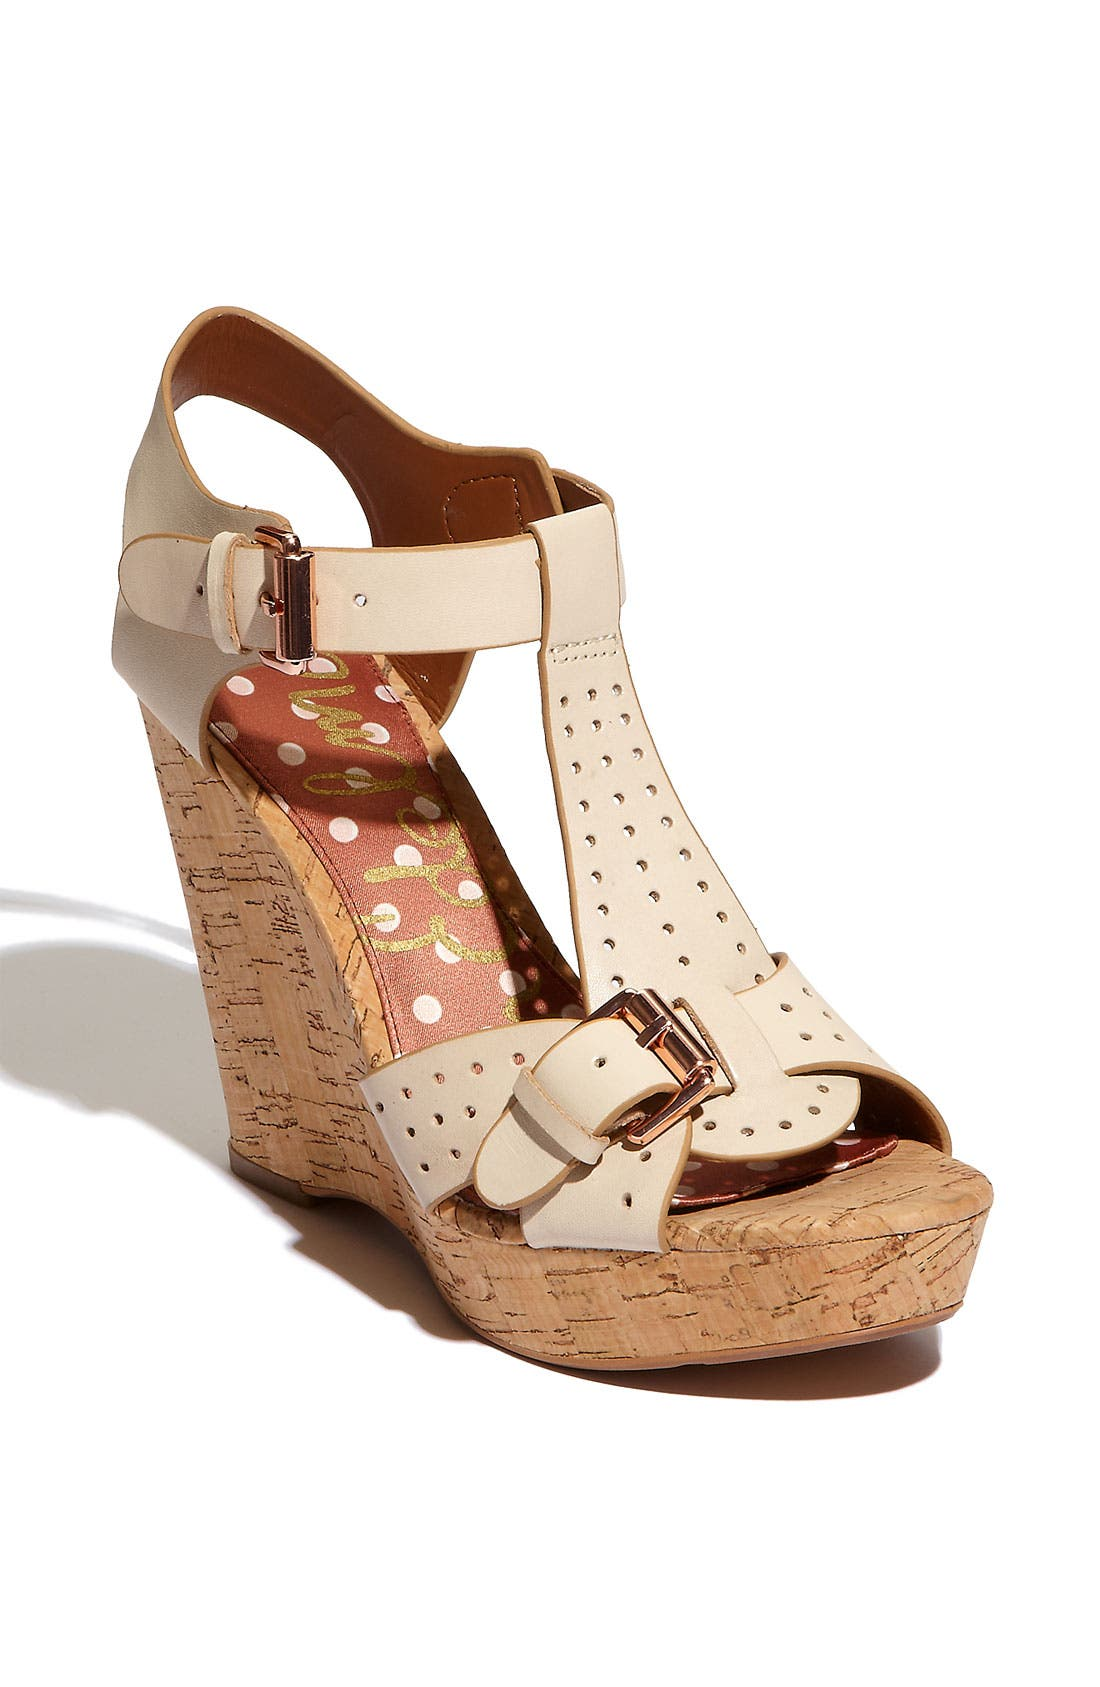 Alternate Image 1 Selected - Sam Edelman 'Karli' Wedge